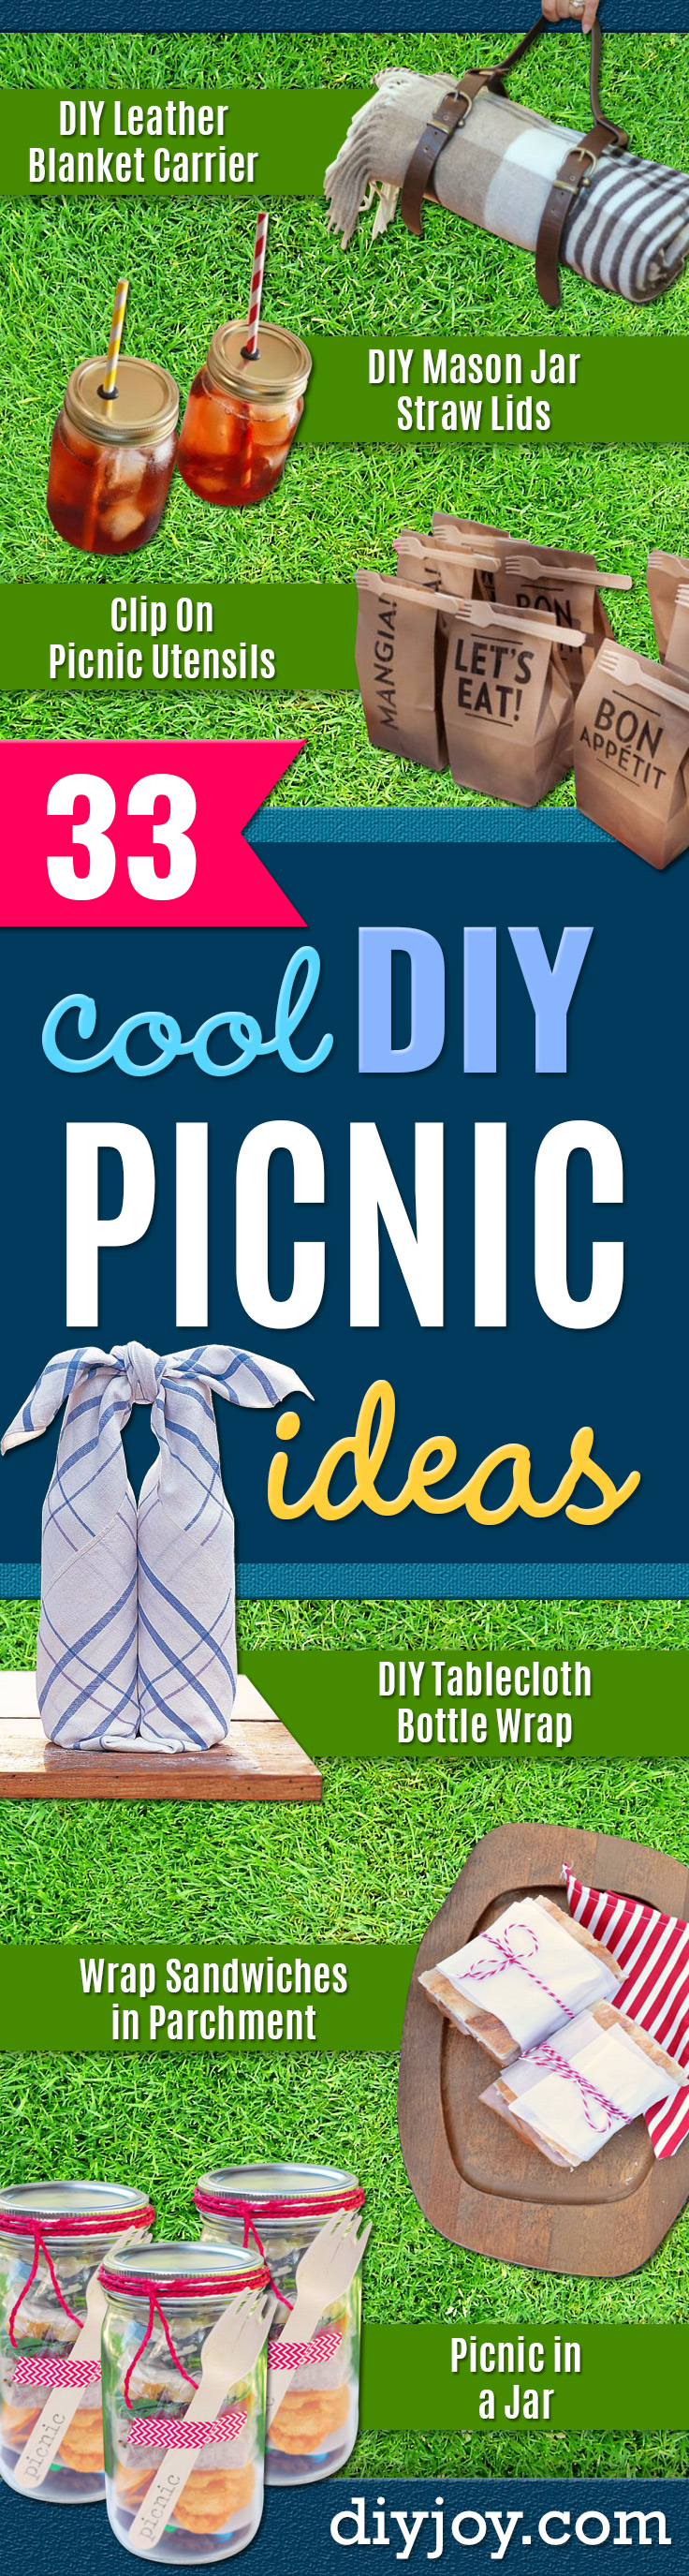 DIY Picnic Ideas - Cool Recipes and Tips for Picnics and Meals Outdoors - Recipes, Easy Sandwich Wraps, Blankets, Baskets and Carriers to Make for Fun Family Outings and Romantic Date Ideas - Mason Jar Drinks, Snack Holders, Utensil Caddy and Picnic Hacks